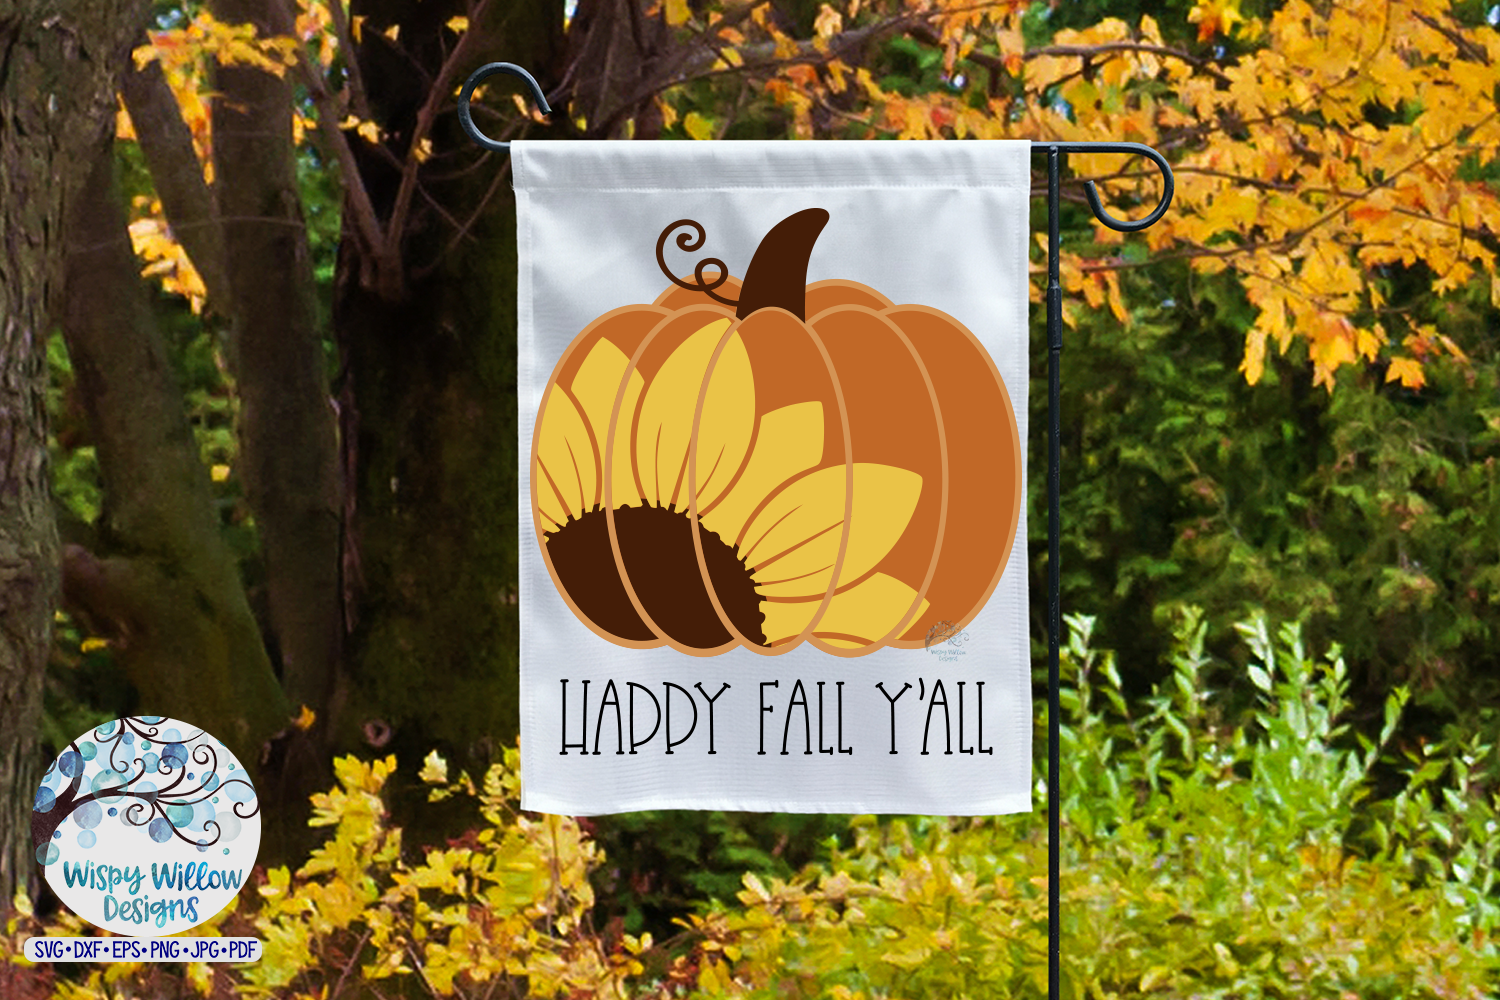 Happy Fall Y'All SVG | Sunflower Pumpkin SVG | Fall SVG example image 2